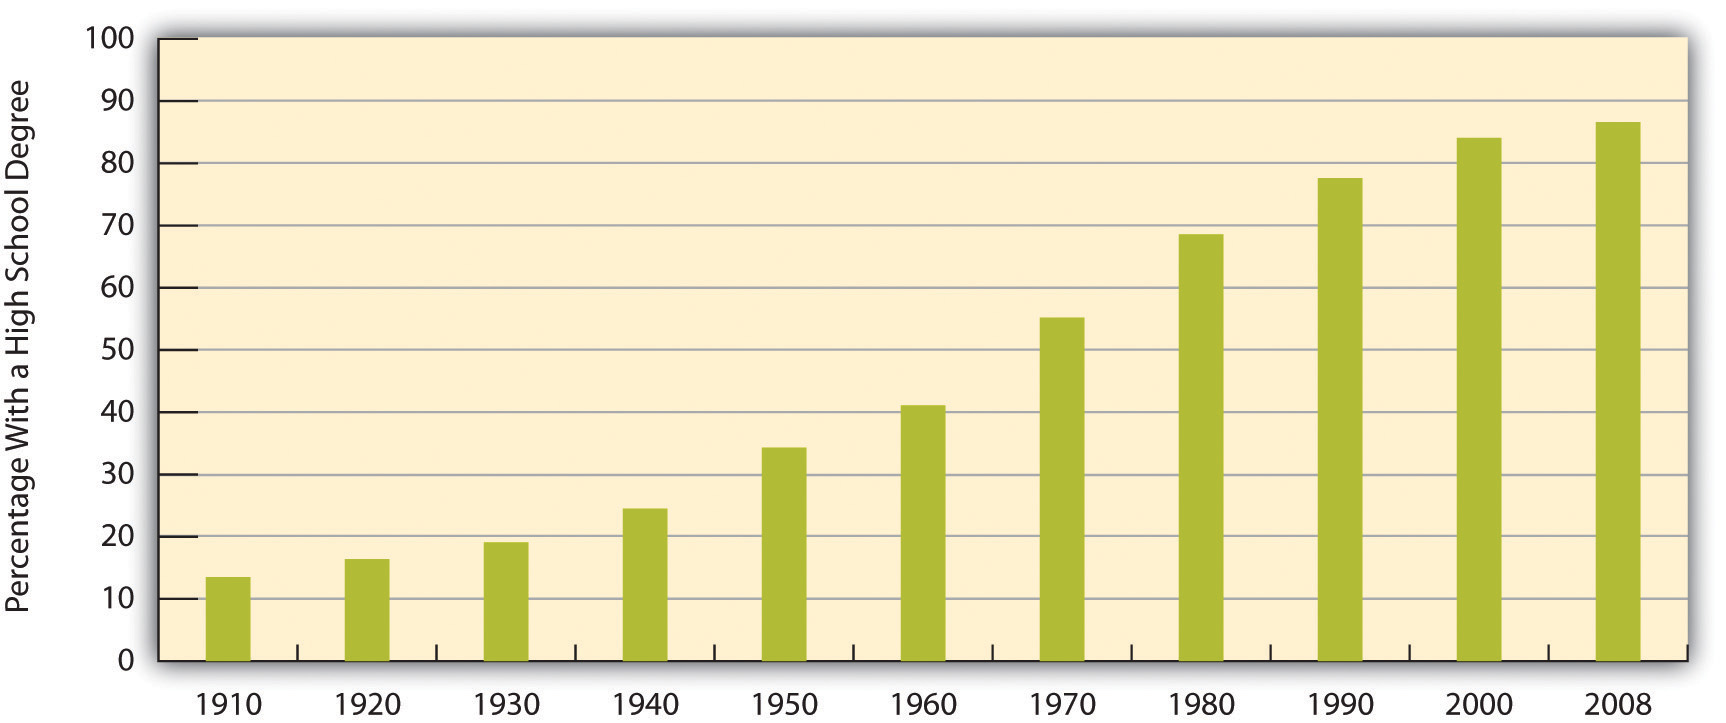 Percentage of Population 25 or Older With at Least a High School Degree, 1910-2008